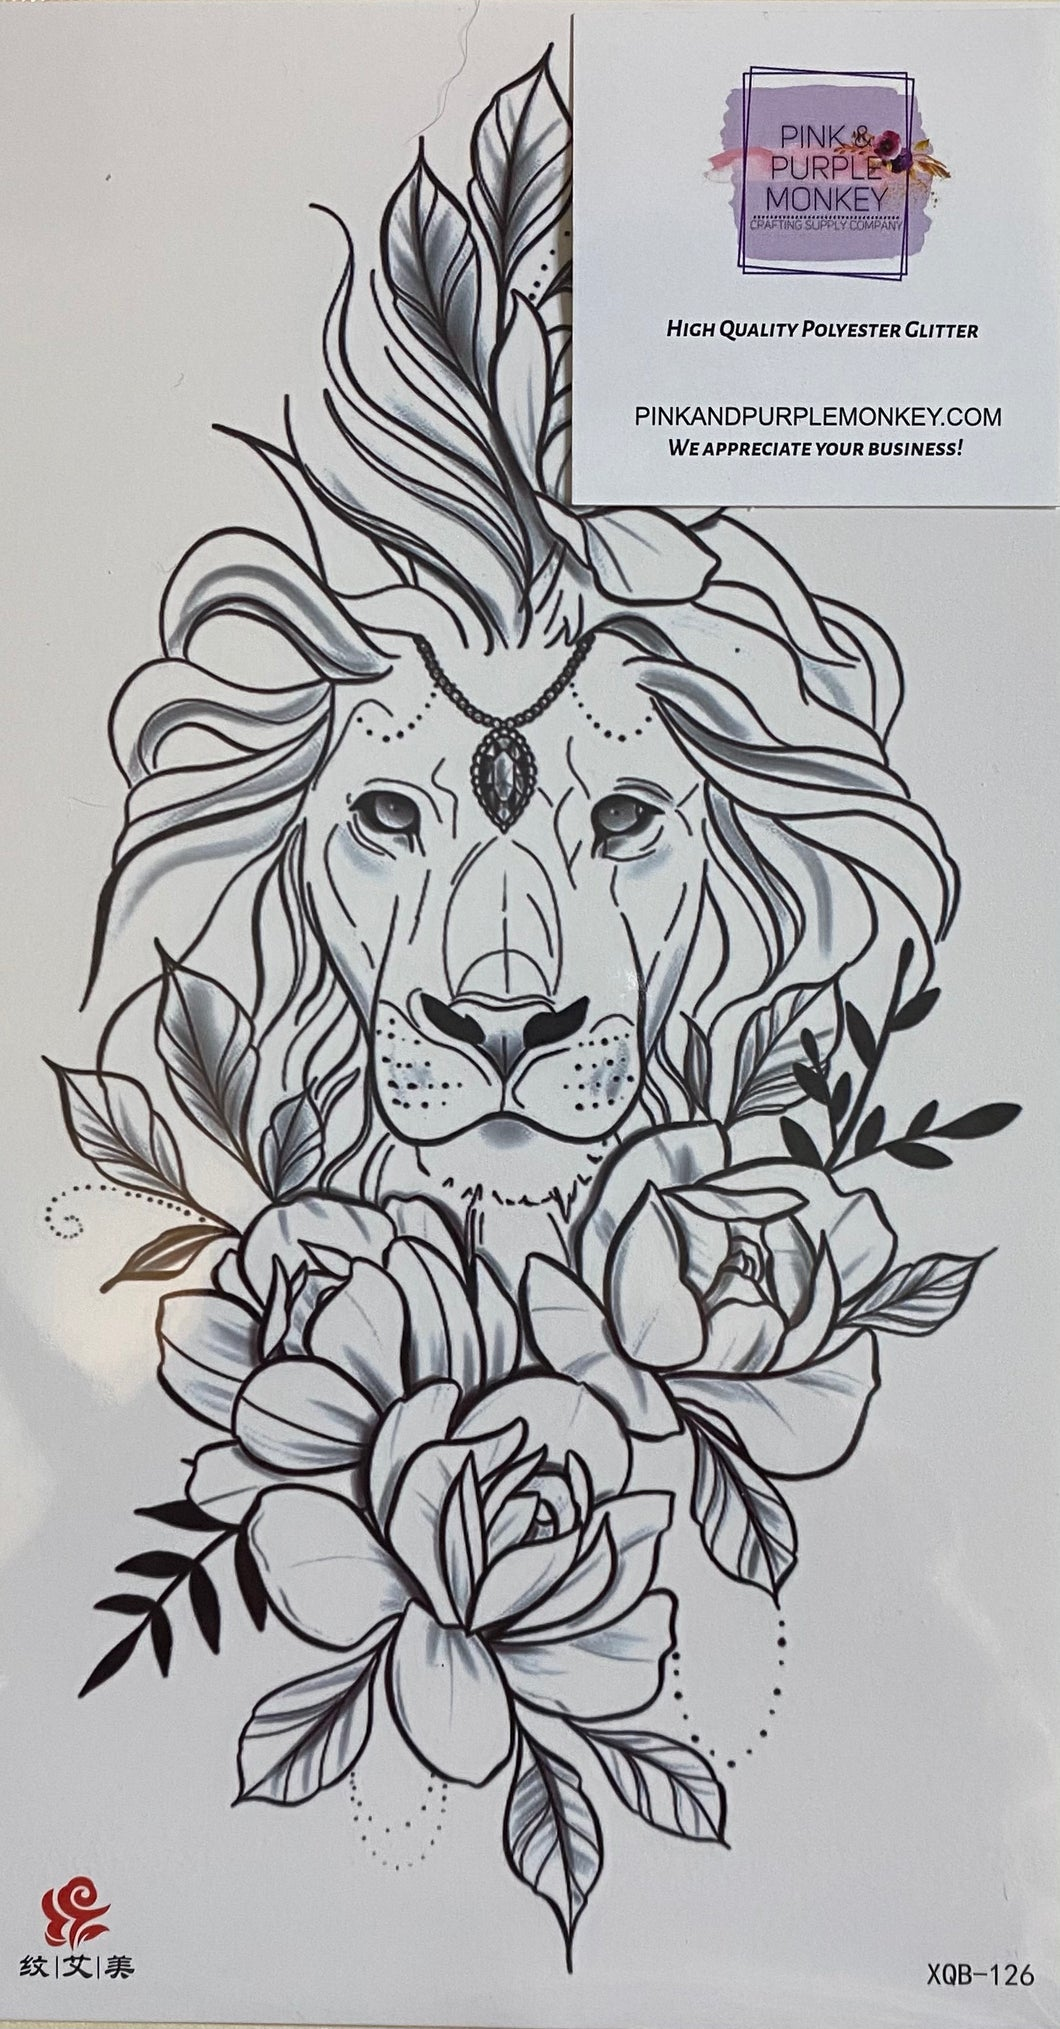 Black & White Lion with Flowers Tattoo